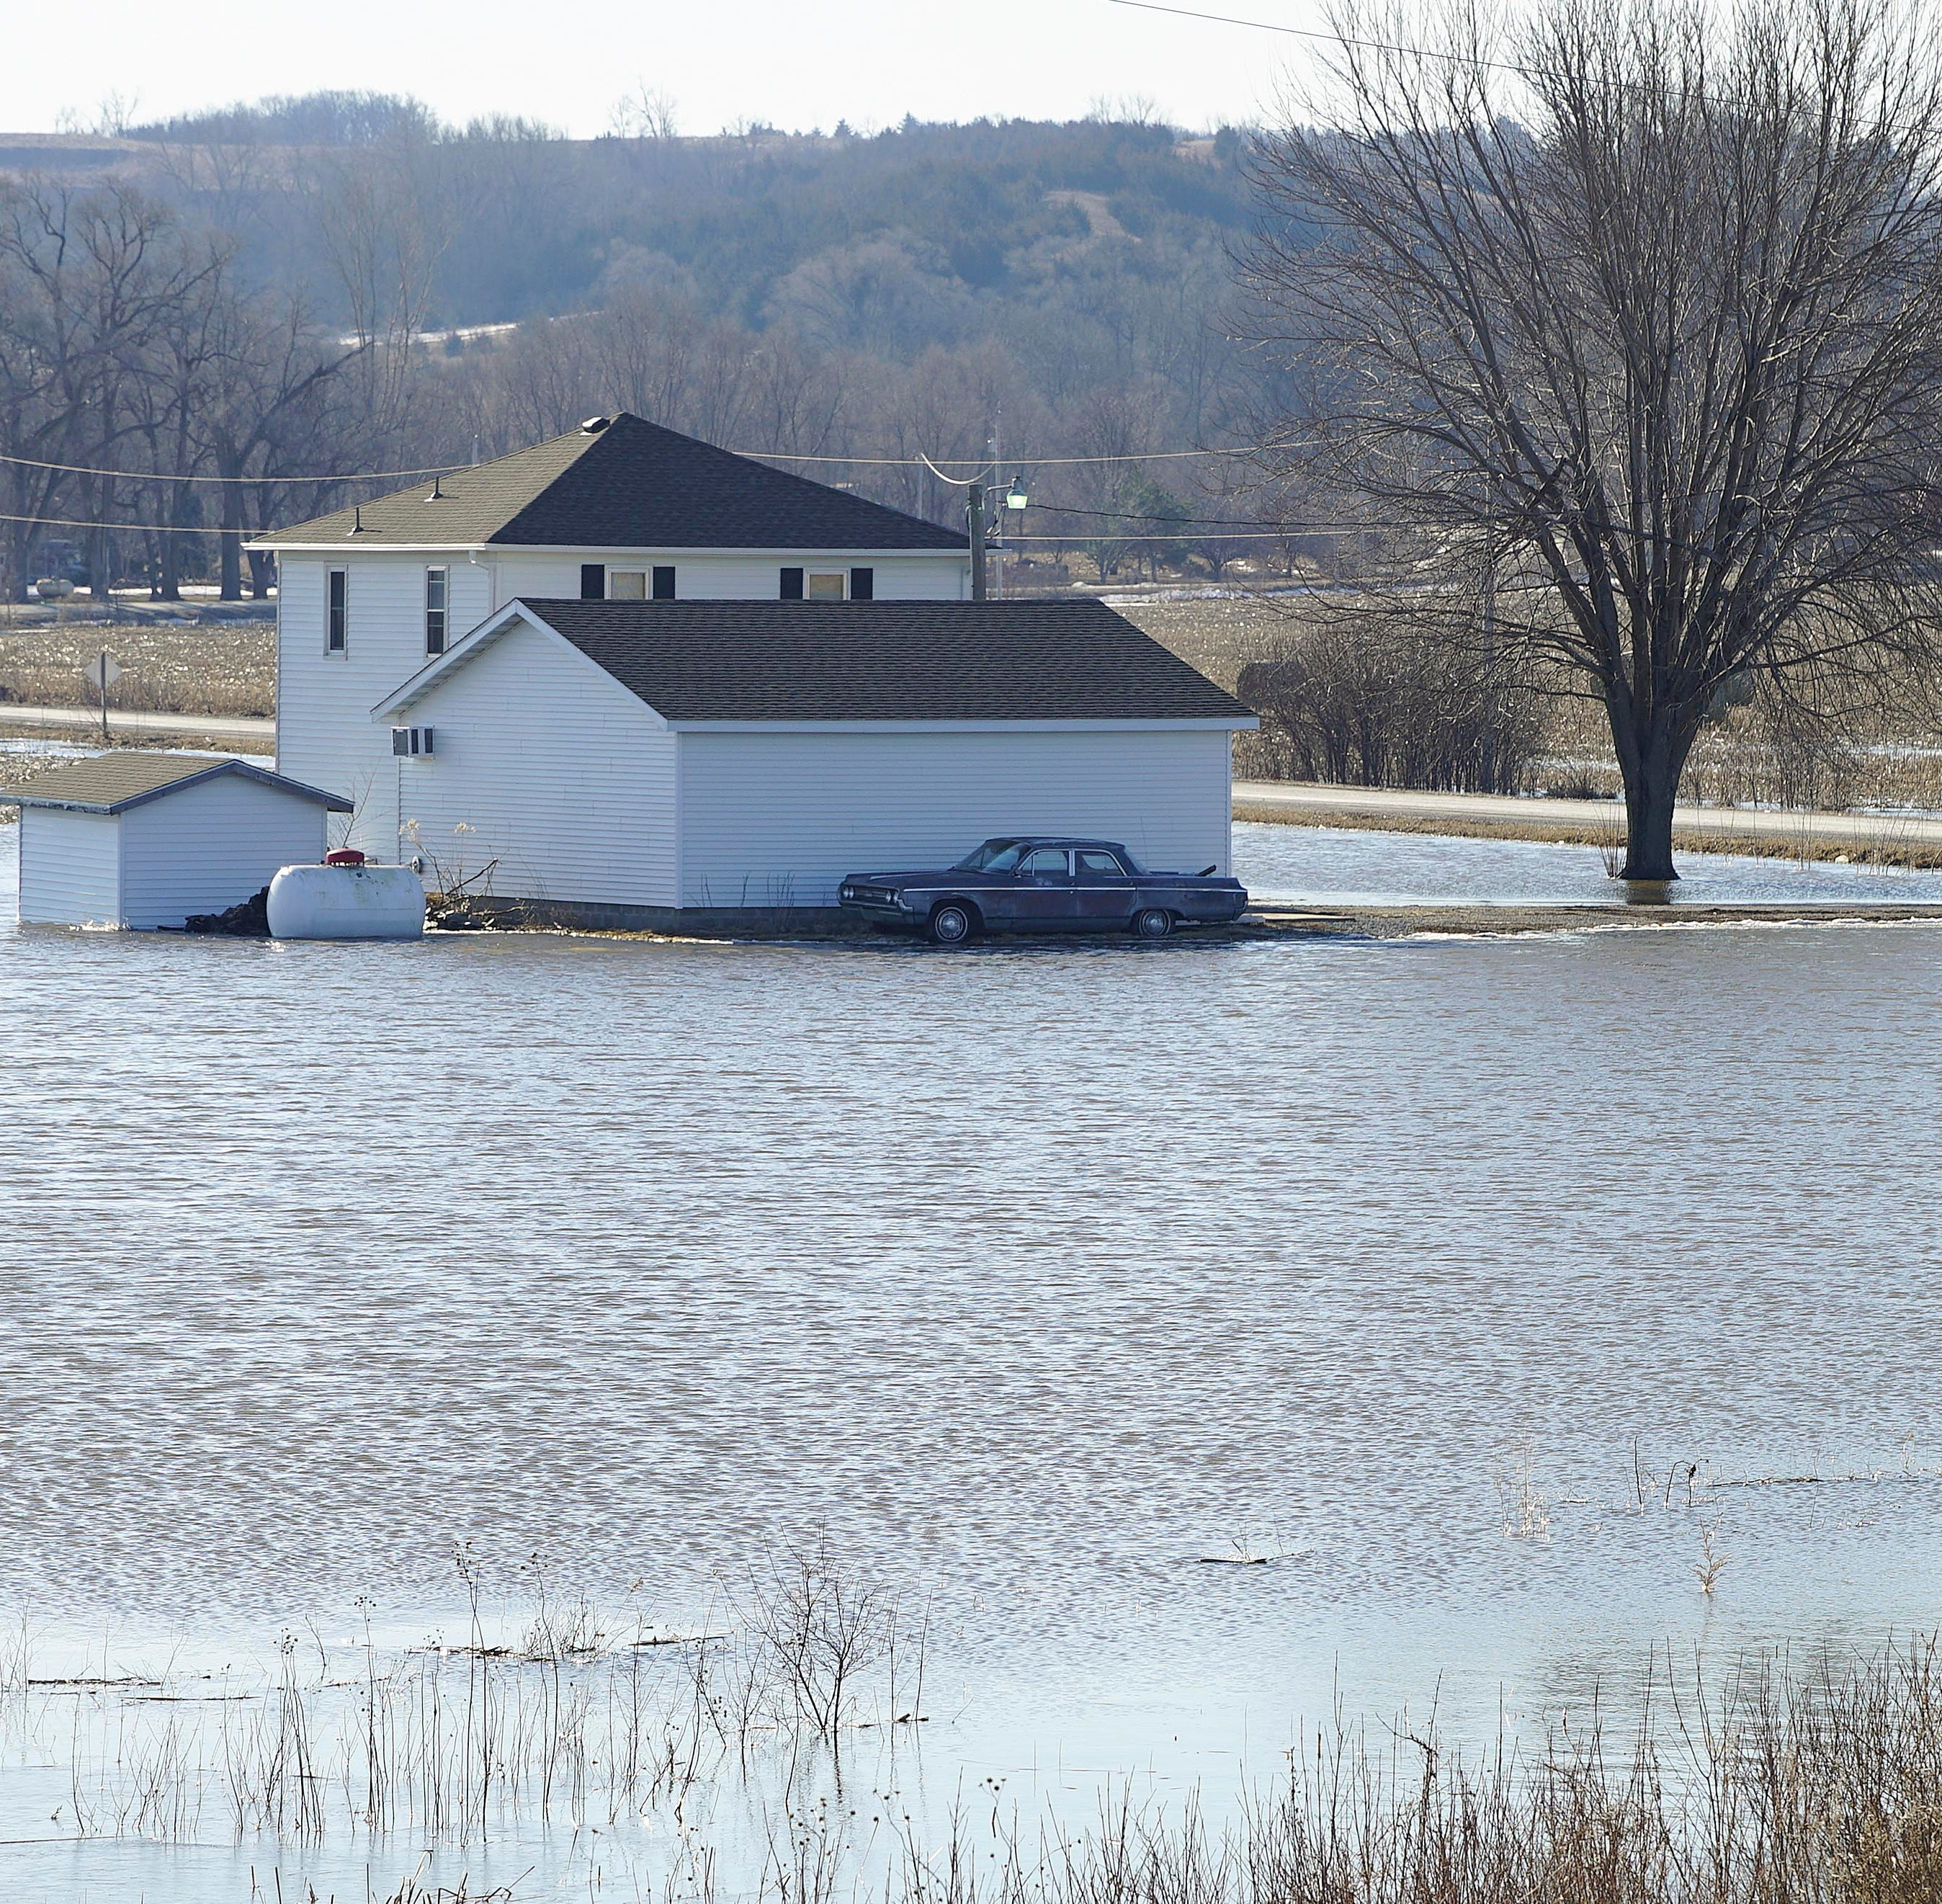 'Everything is underwater': In western Iowa towns, some residents reeling after flood